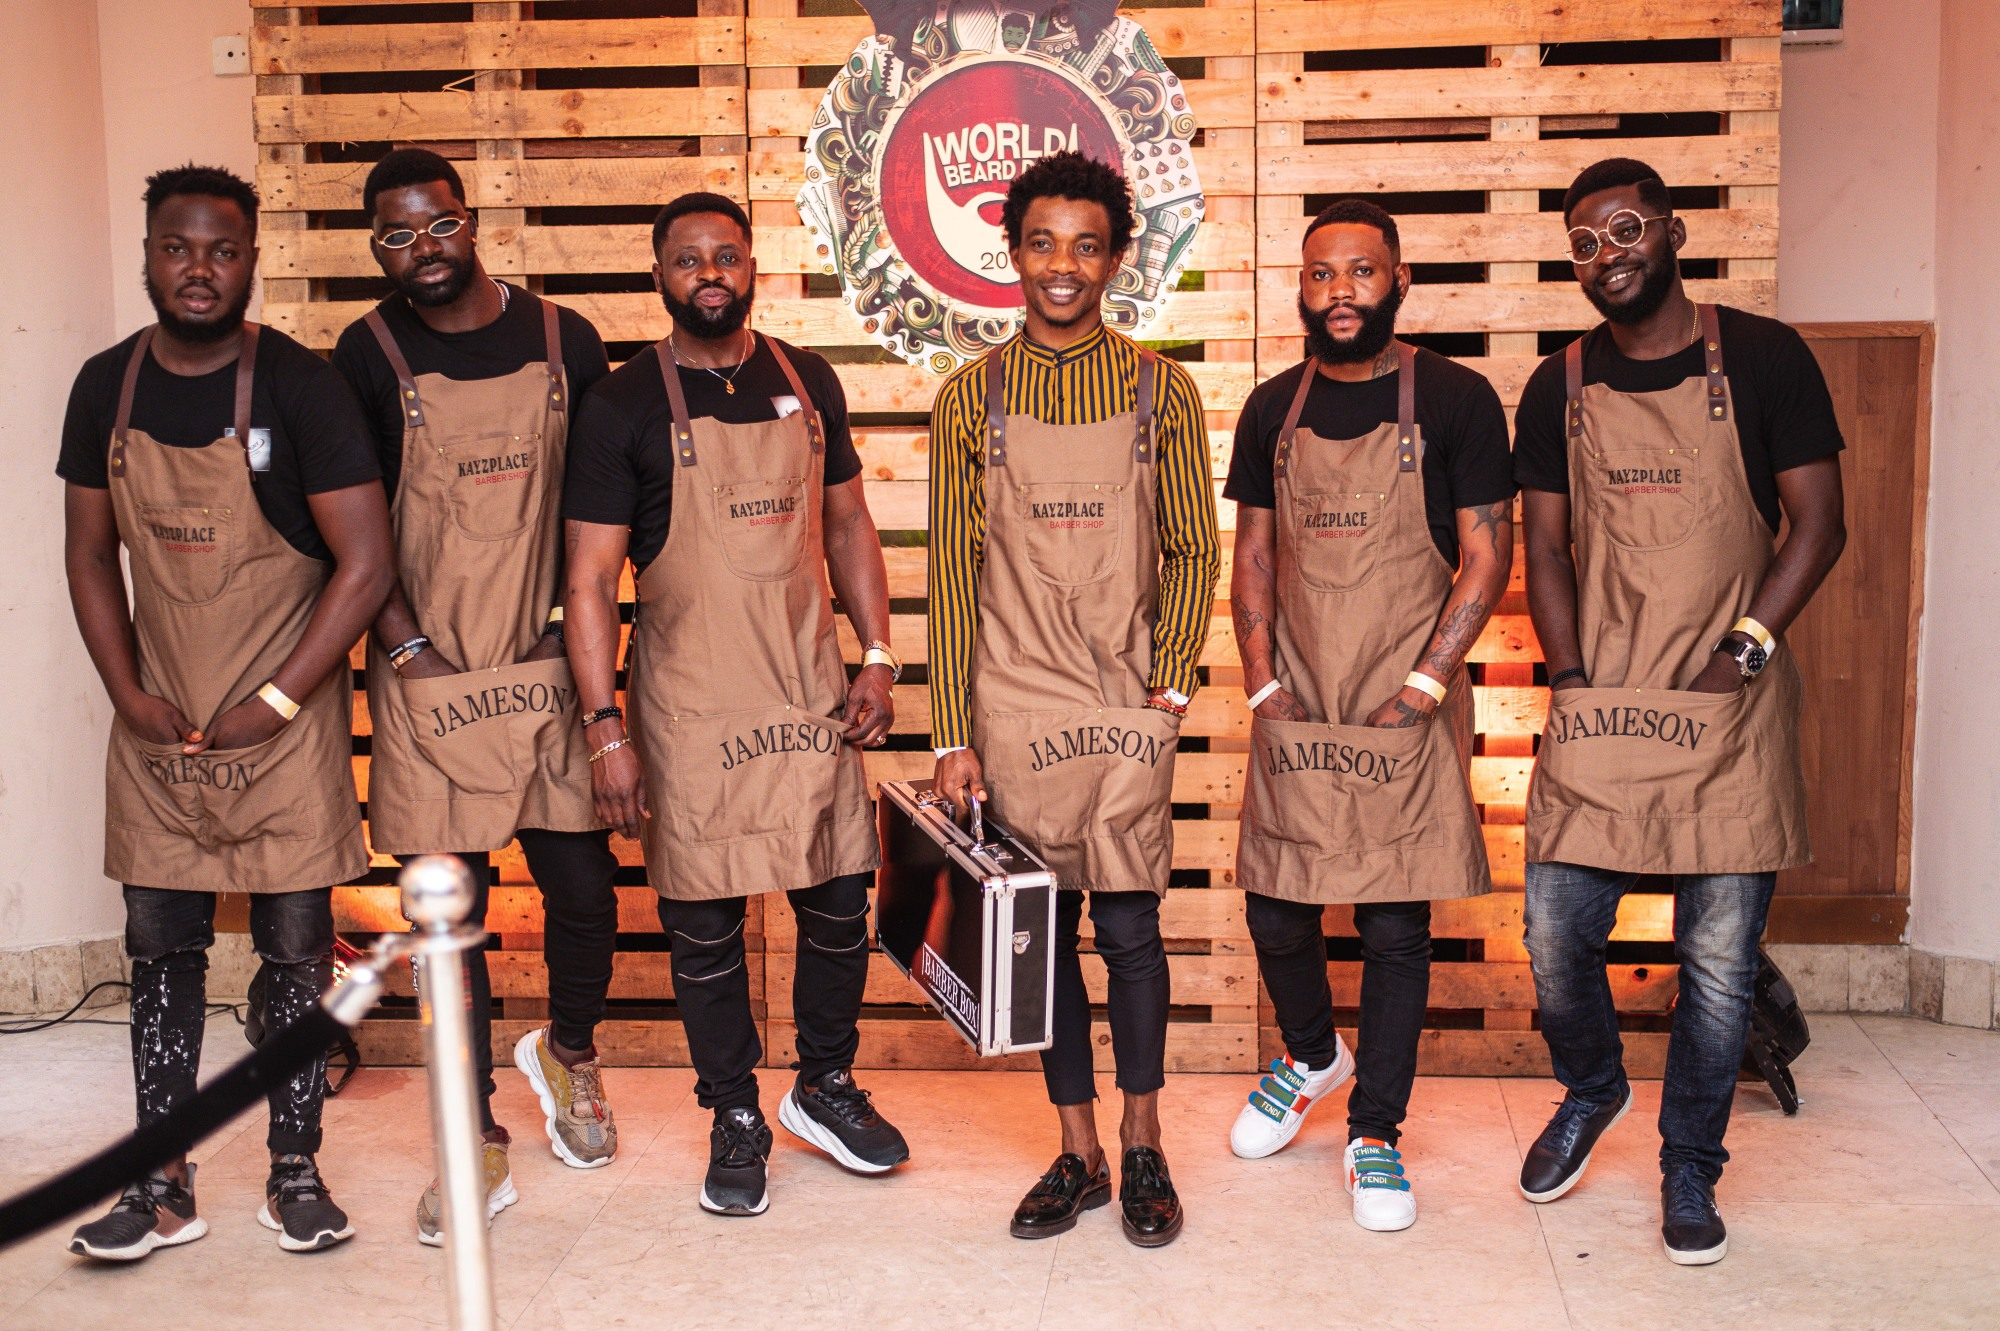 Kayzplace and his barbers at Jameson World Beard Day event